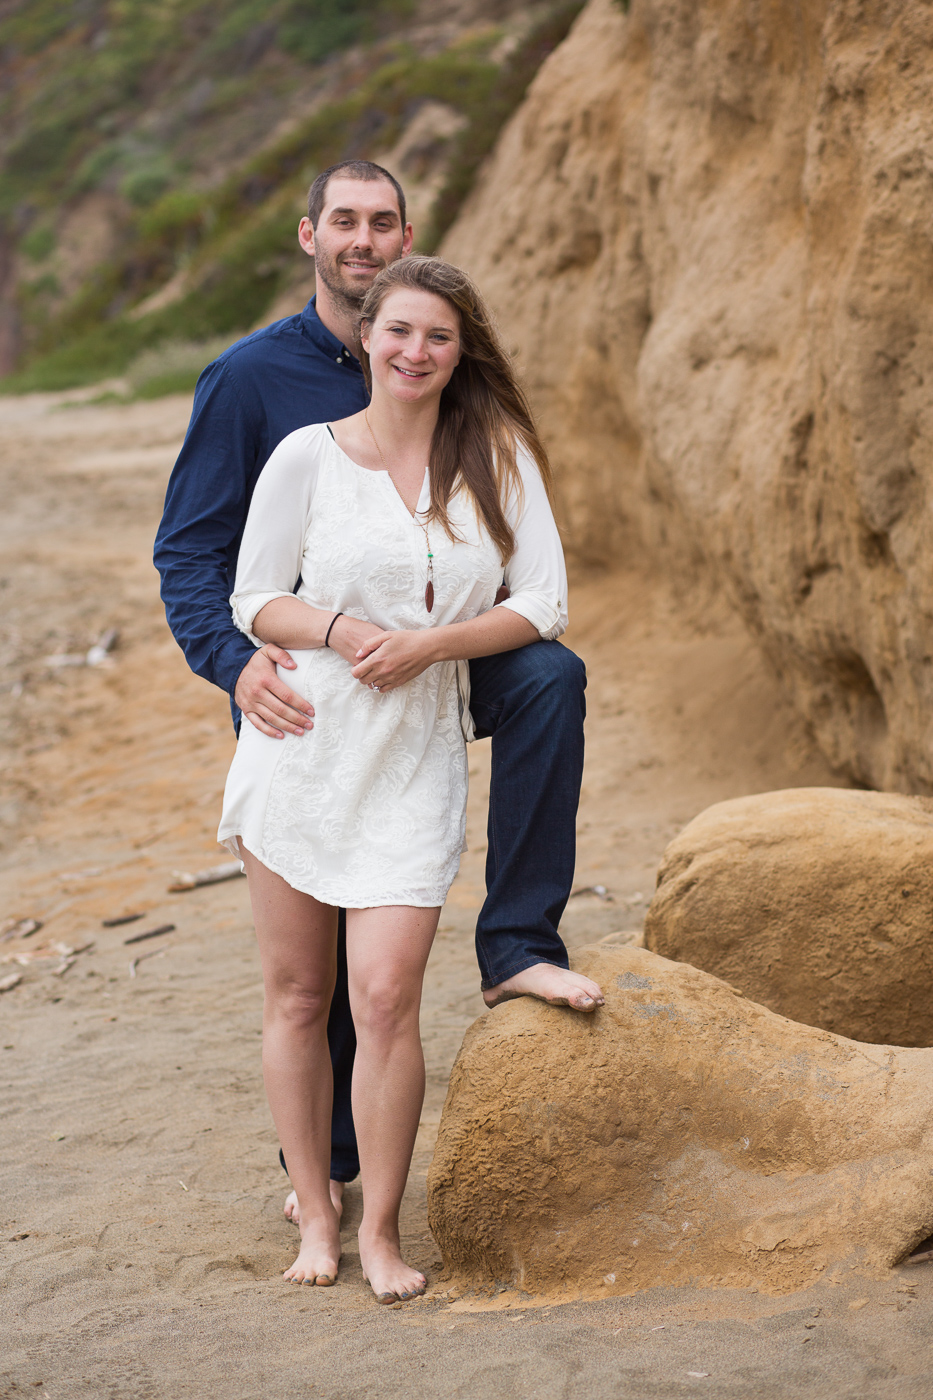 Baker-beach-san-francisco-california-engagement-session-16.jpg